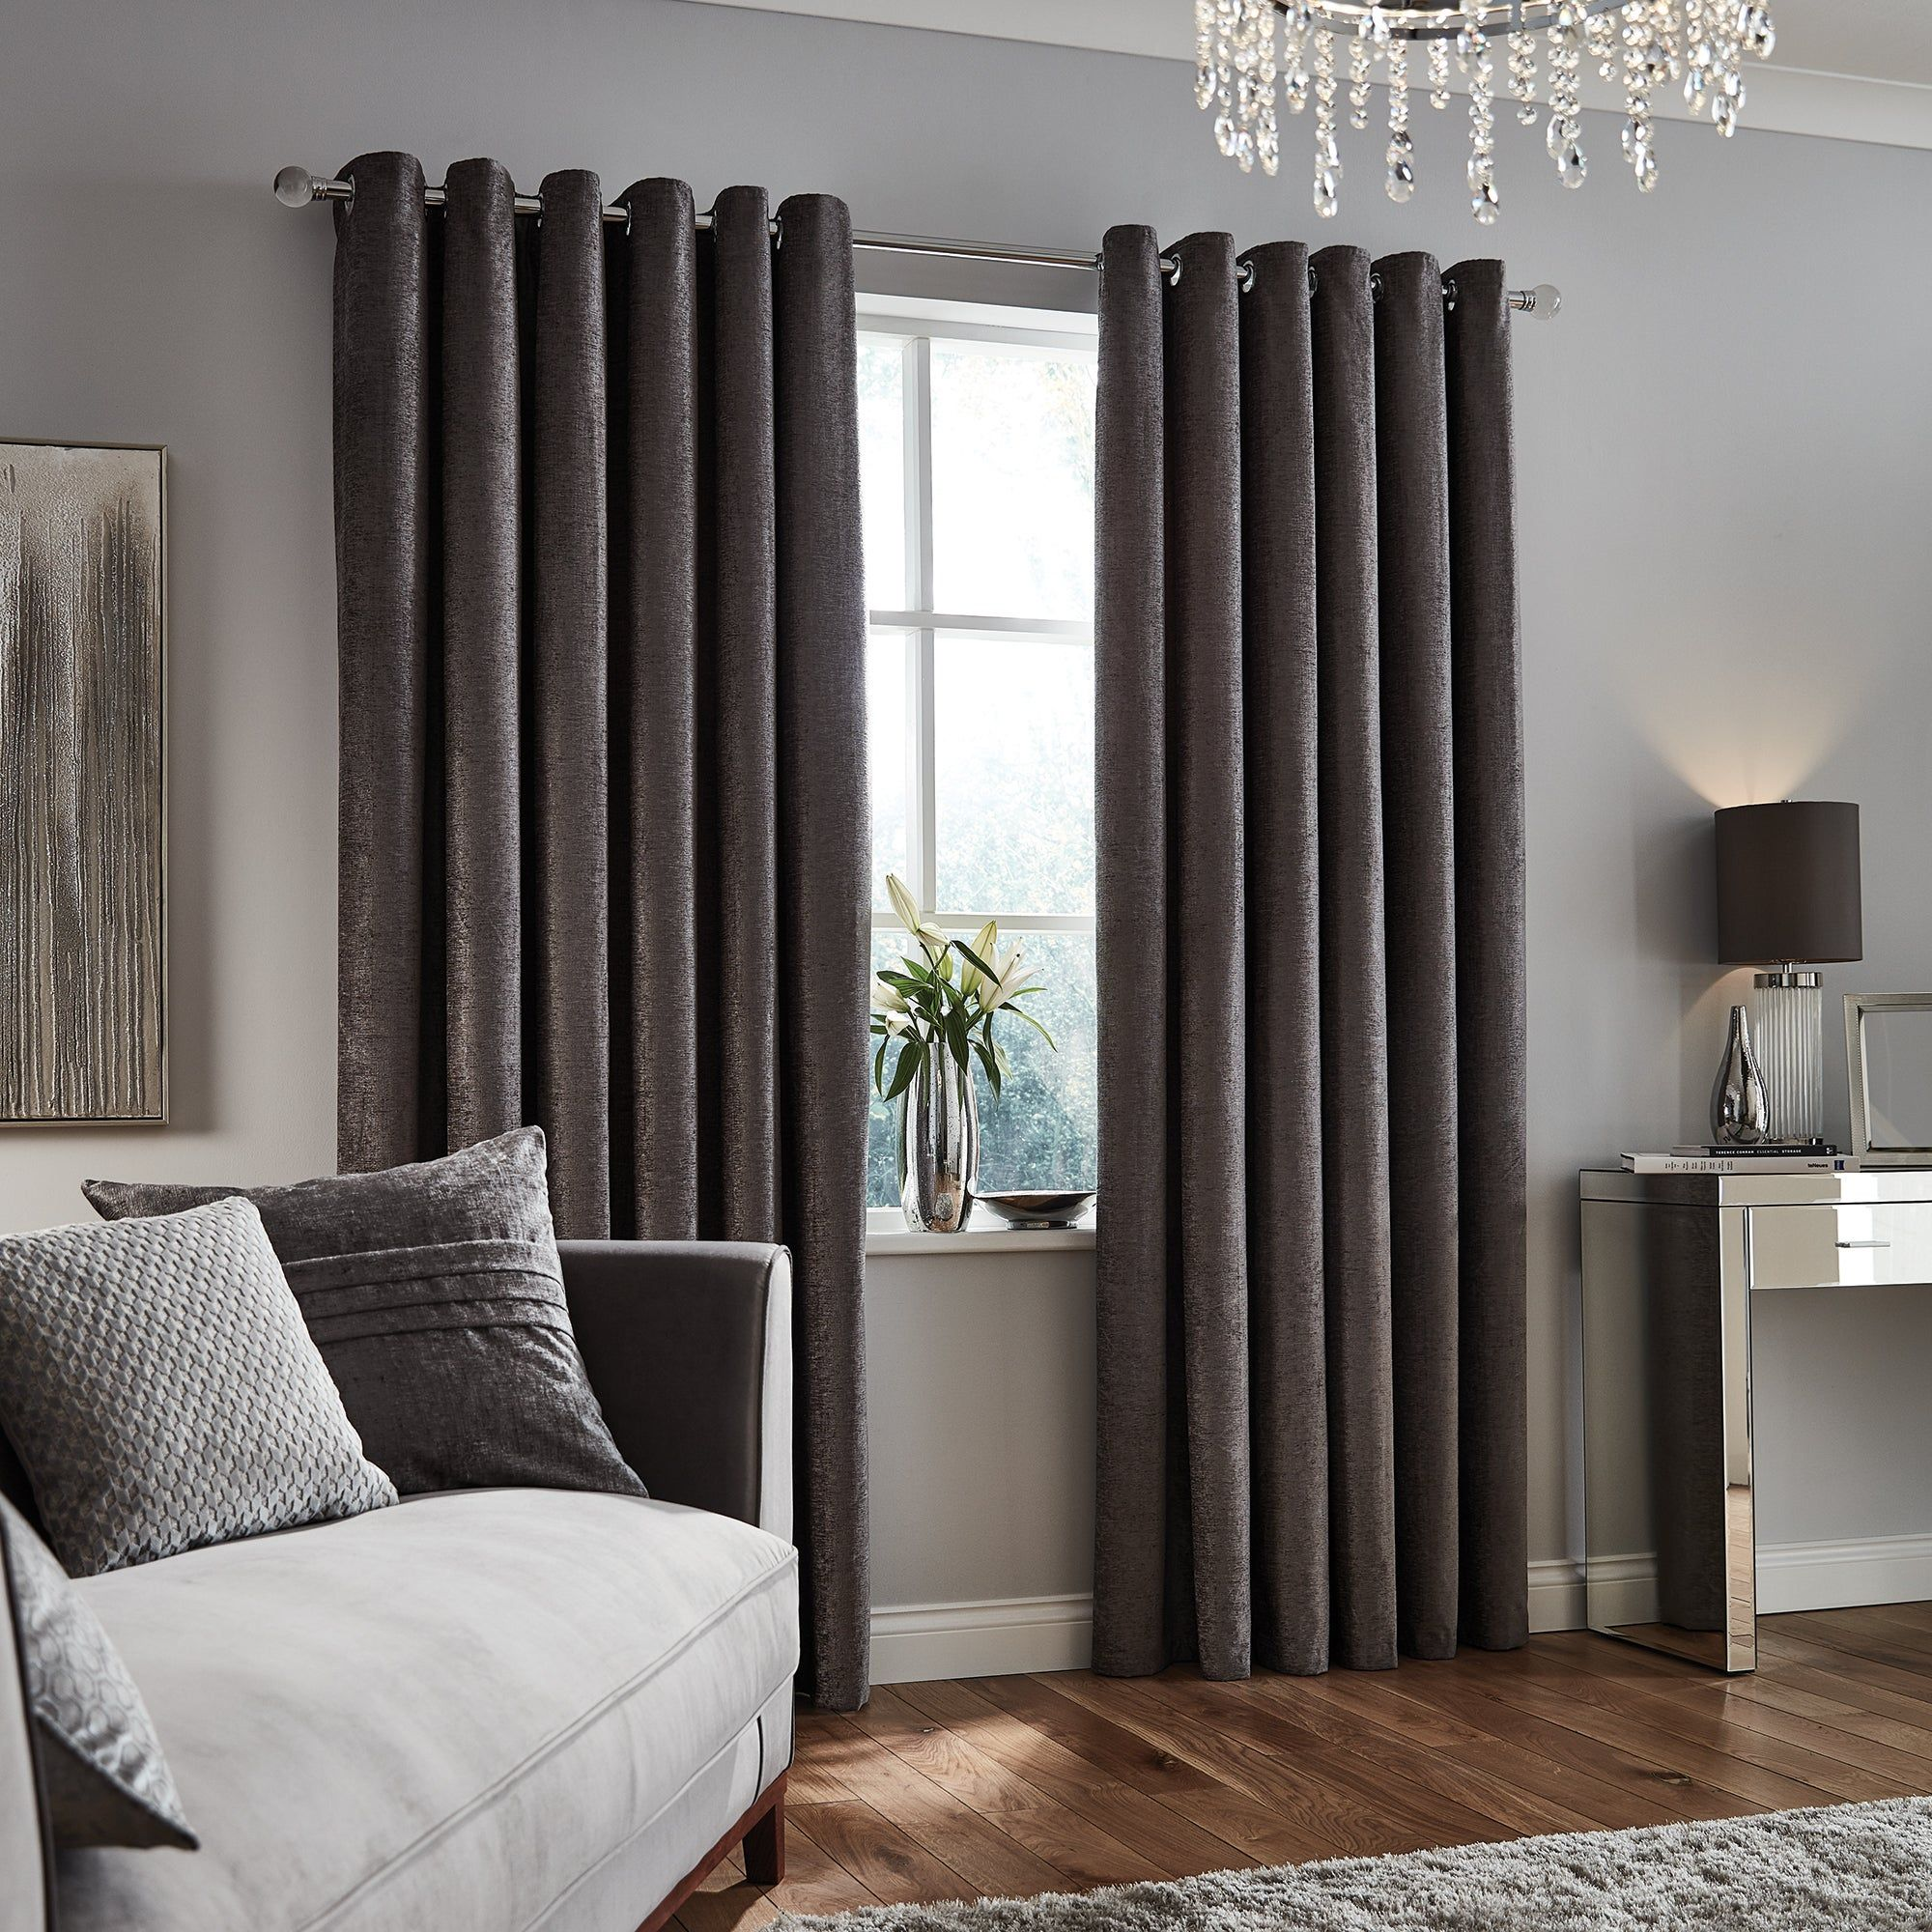 Chenille Grey Eyelet Curtains Grey Eyelet Curtains Chenille Curtains Luxury Living Room